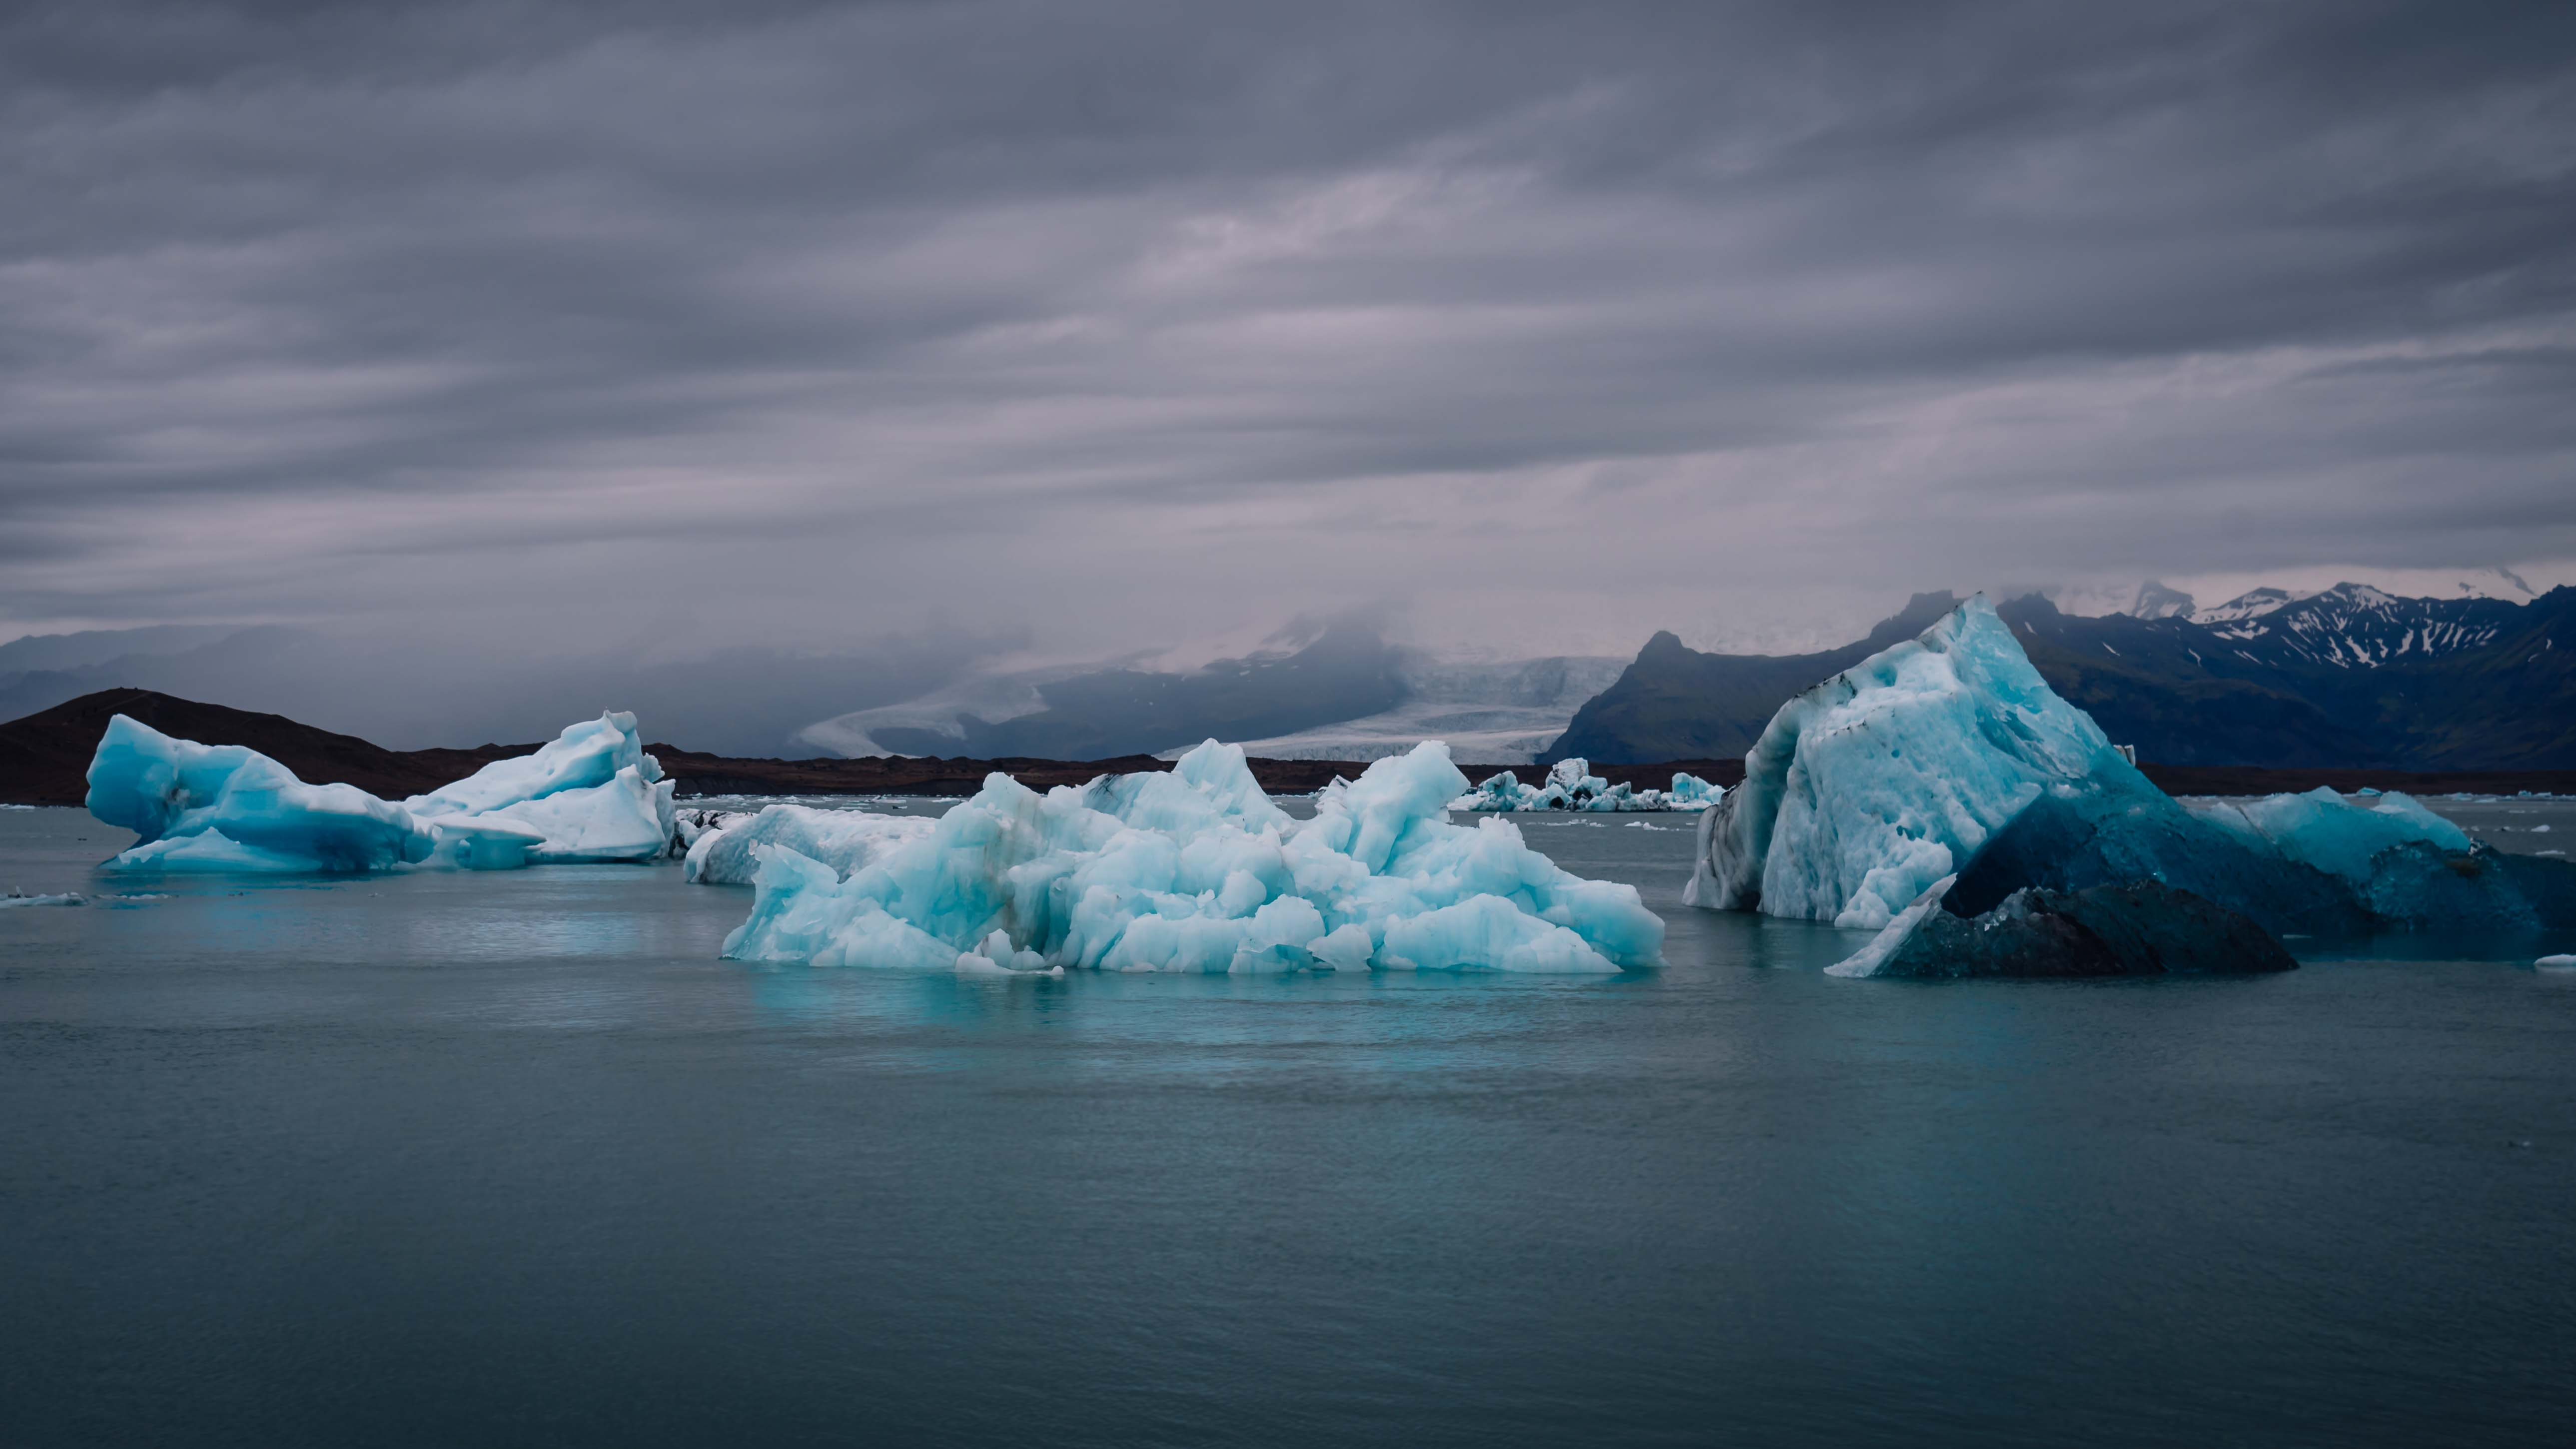 neilson travel photography bay area photographer iceland glaciers three one bright